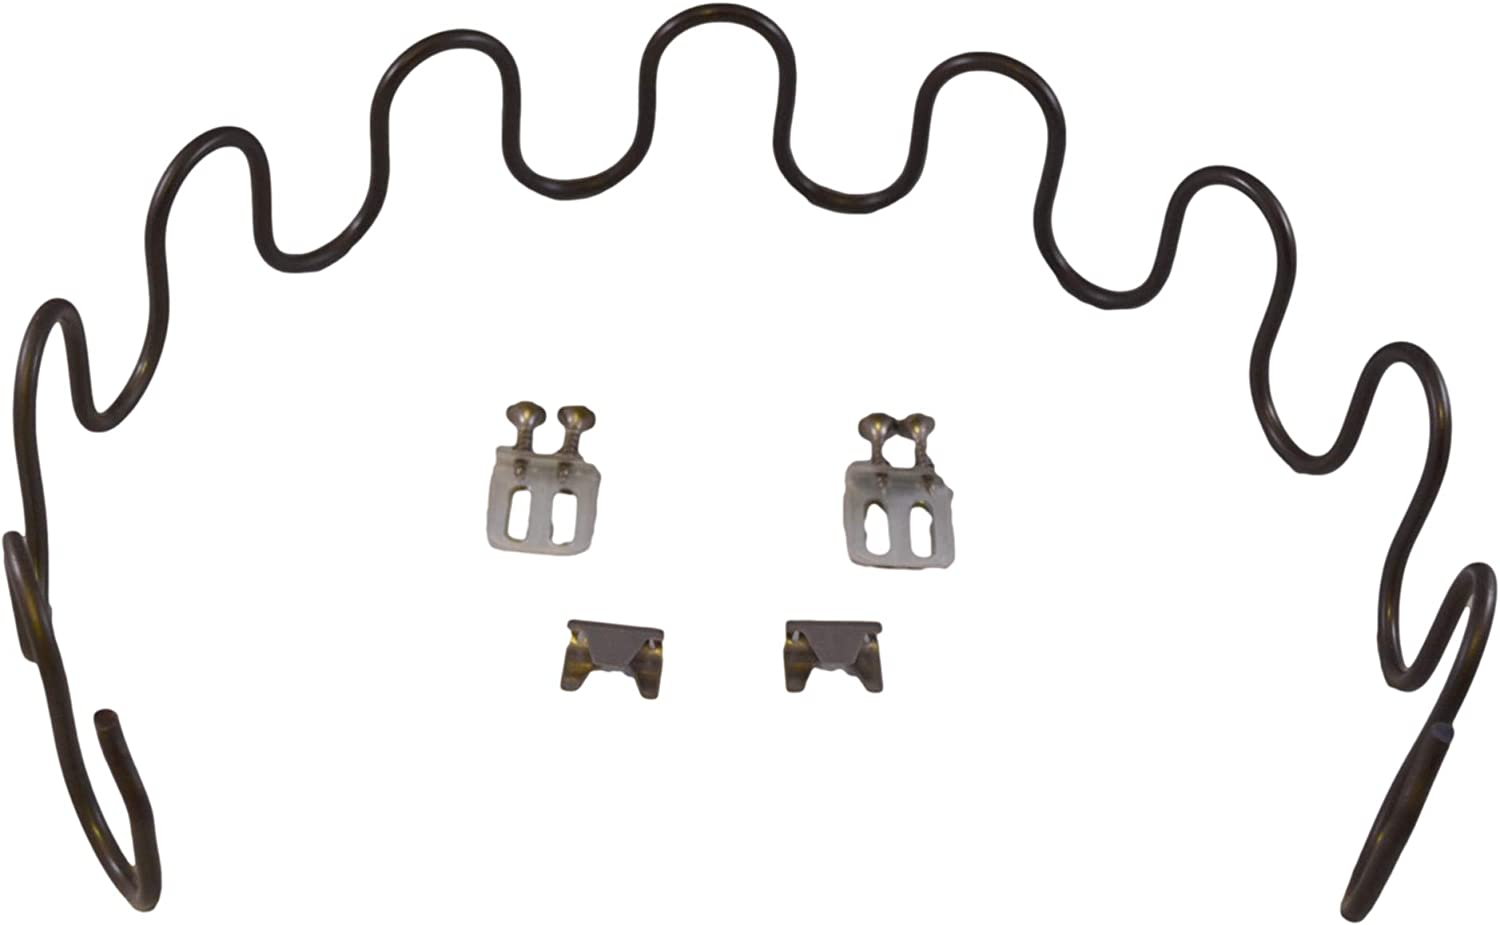 2pk Springs Clips House2Home 23 Sofa Upholstery Spring Replacement Kit Wire for Furniture Chair Couch Repair Includes Instructions